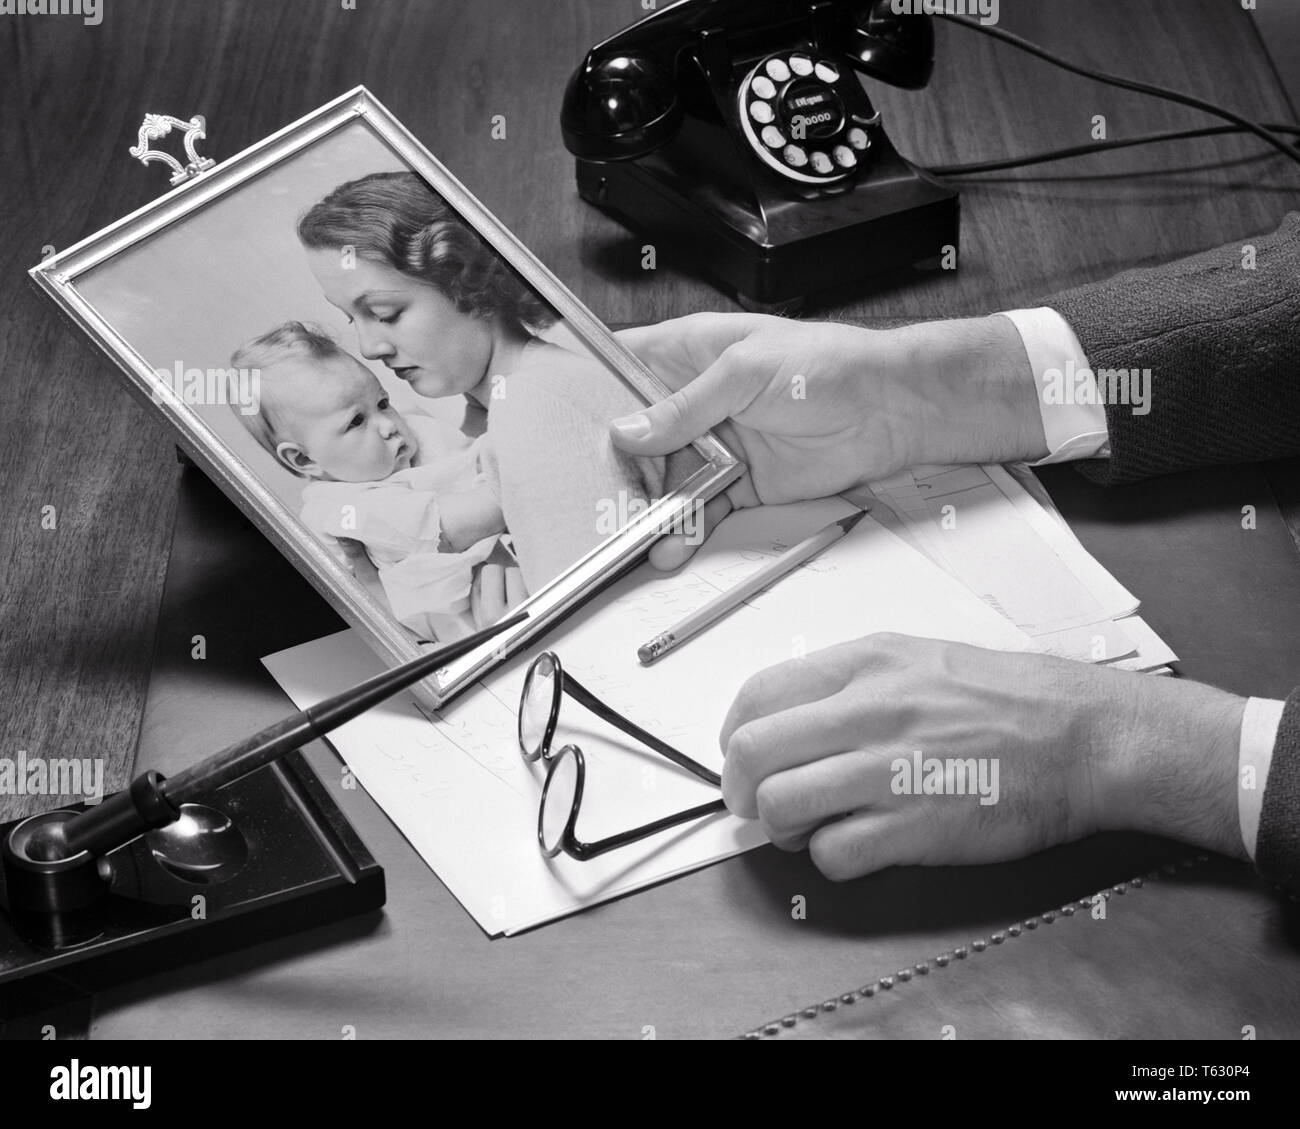 1940s BUSINESSMAN'S HANDS HOLDING A FRAMED PHOTO OF HIS WIFE AND  BABY ON HIS DESK WITH PHONE PEN PAPER AND EYEGLASSES - s9495 HAR001 HARS PAIR MOTHERS OLD TIME NOSTALGIA OLD FASHION 1 PHOTOGRAPH JUVENILE YOUNG ADULT FAMILIES JOY LIFESTYLE SATISFACTION FEMALES MARRIED STUDIO SHOT SPOUSE HUSBANDS HOME LIFE COPY SPACE LADIES PERSONS CARING MALES EYEGLASSES B&W PARTNER HIGH ANGLE HIS AND PRIDE A OF ON OCCUPATIONS CONCEPTUAL FRAMED JUVENILES MID-ADULT MID-ADULT MAN MOMS TOGETHERNESS WIVES YOUNG ADULT WOMAN BABY GIRL BLACK AND WHITE CAUCASIAN ETHNICITY HANDS ONLY HAR001 OLD FASHIONED - Stock Image